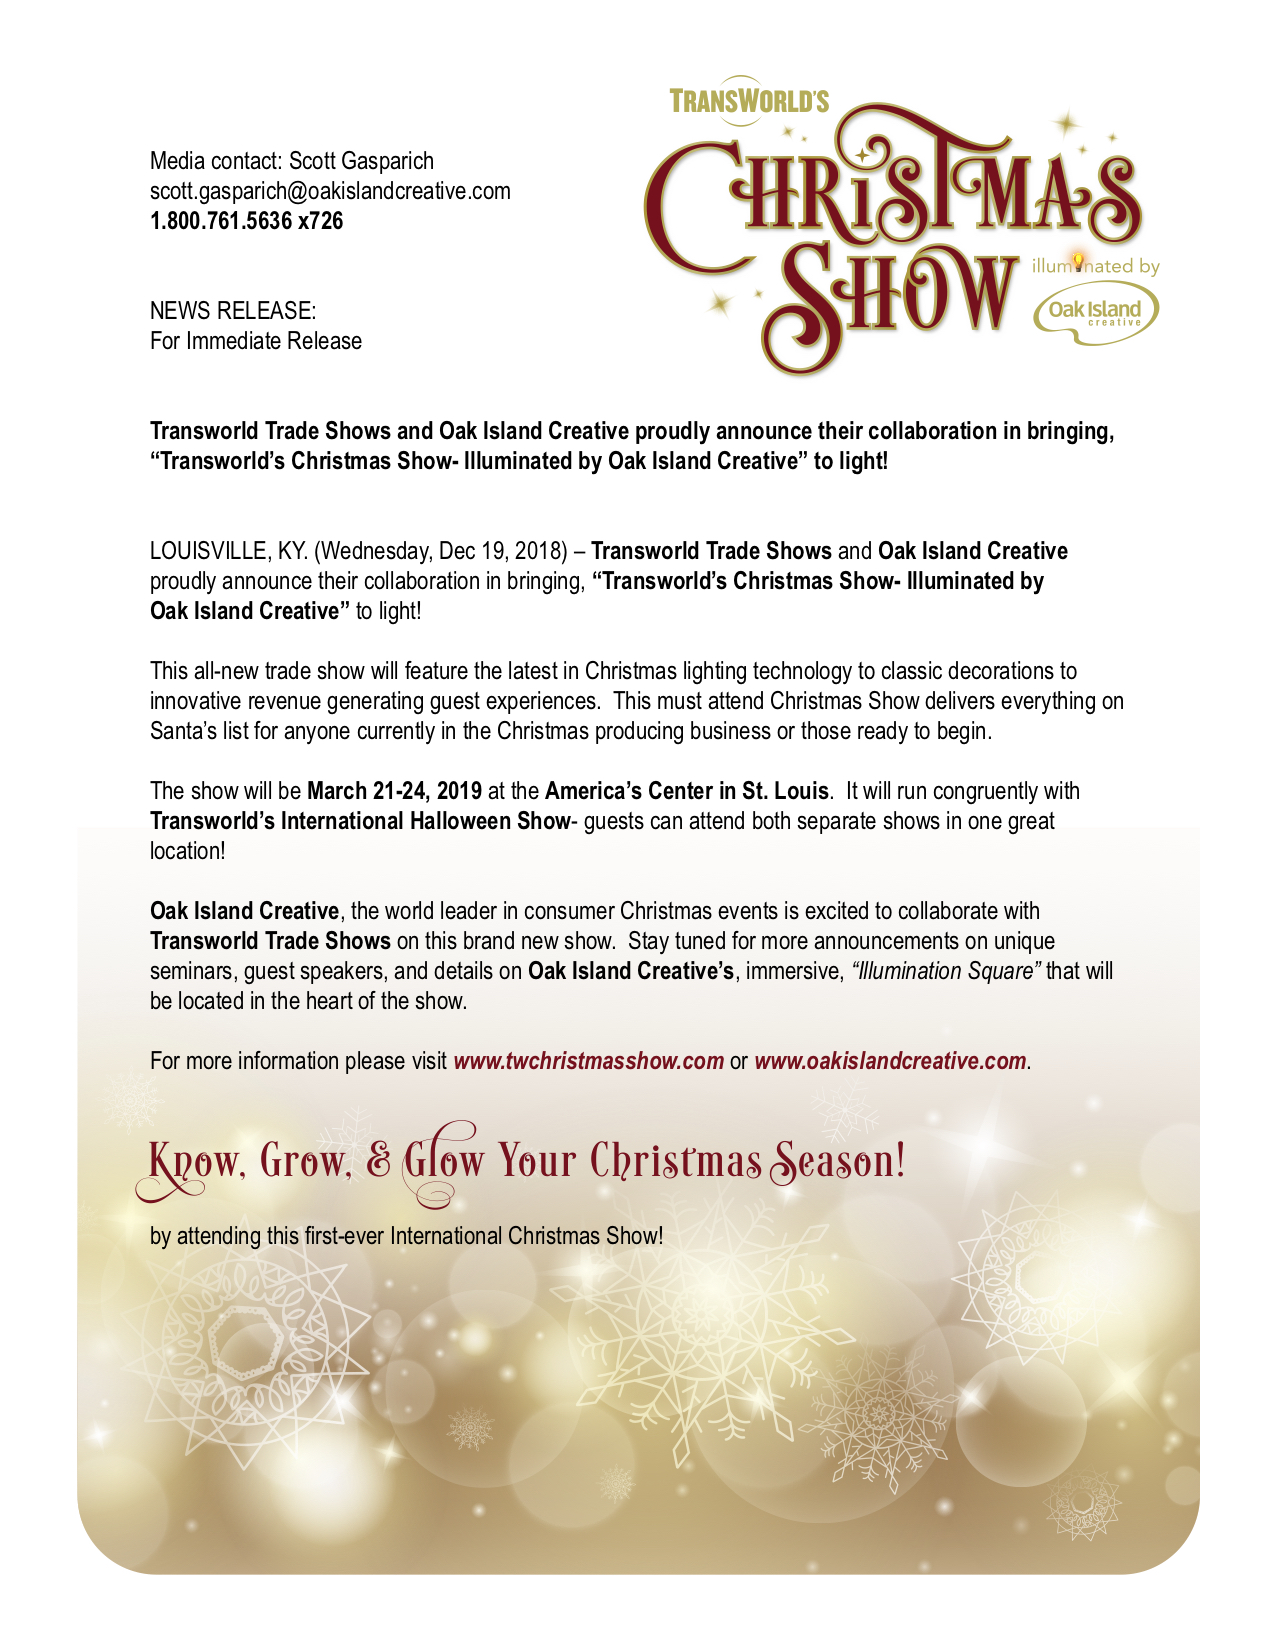 Transworld's Christmas Show illuminated by Oak Island Creative